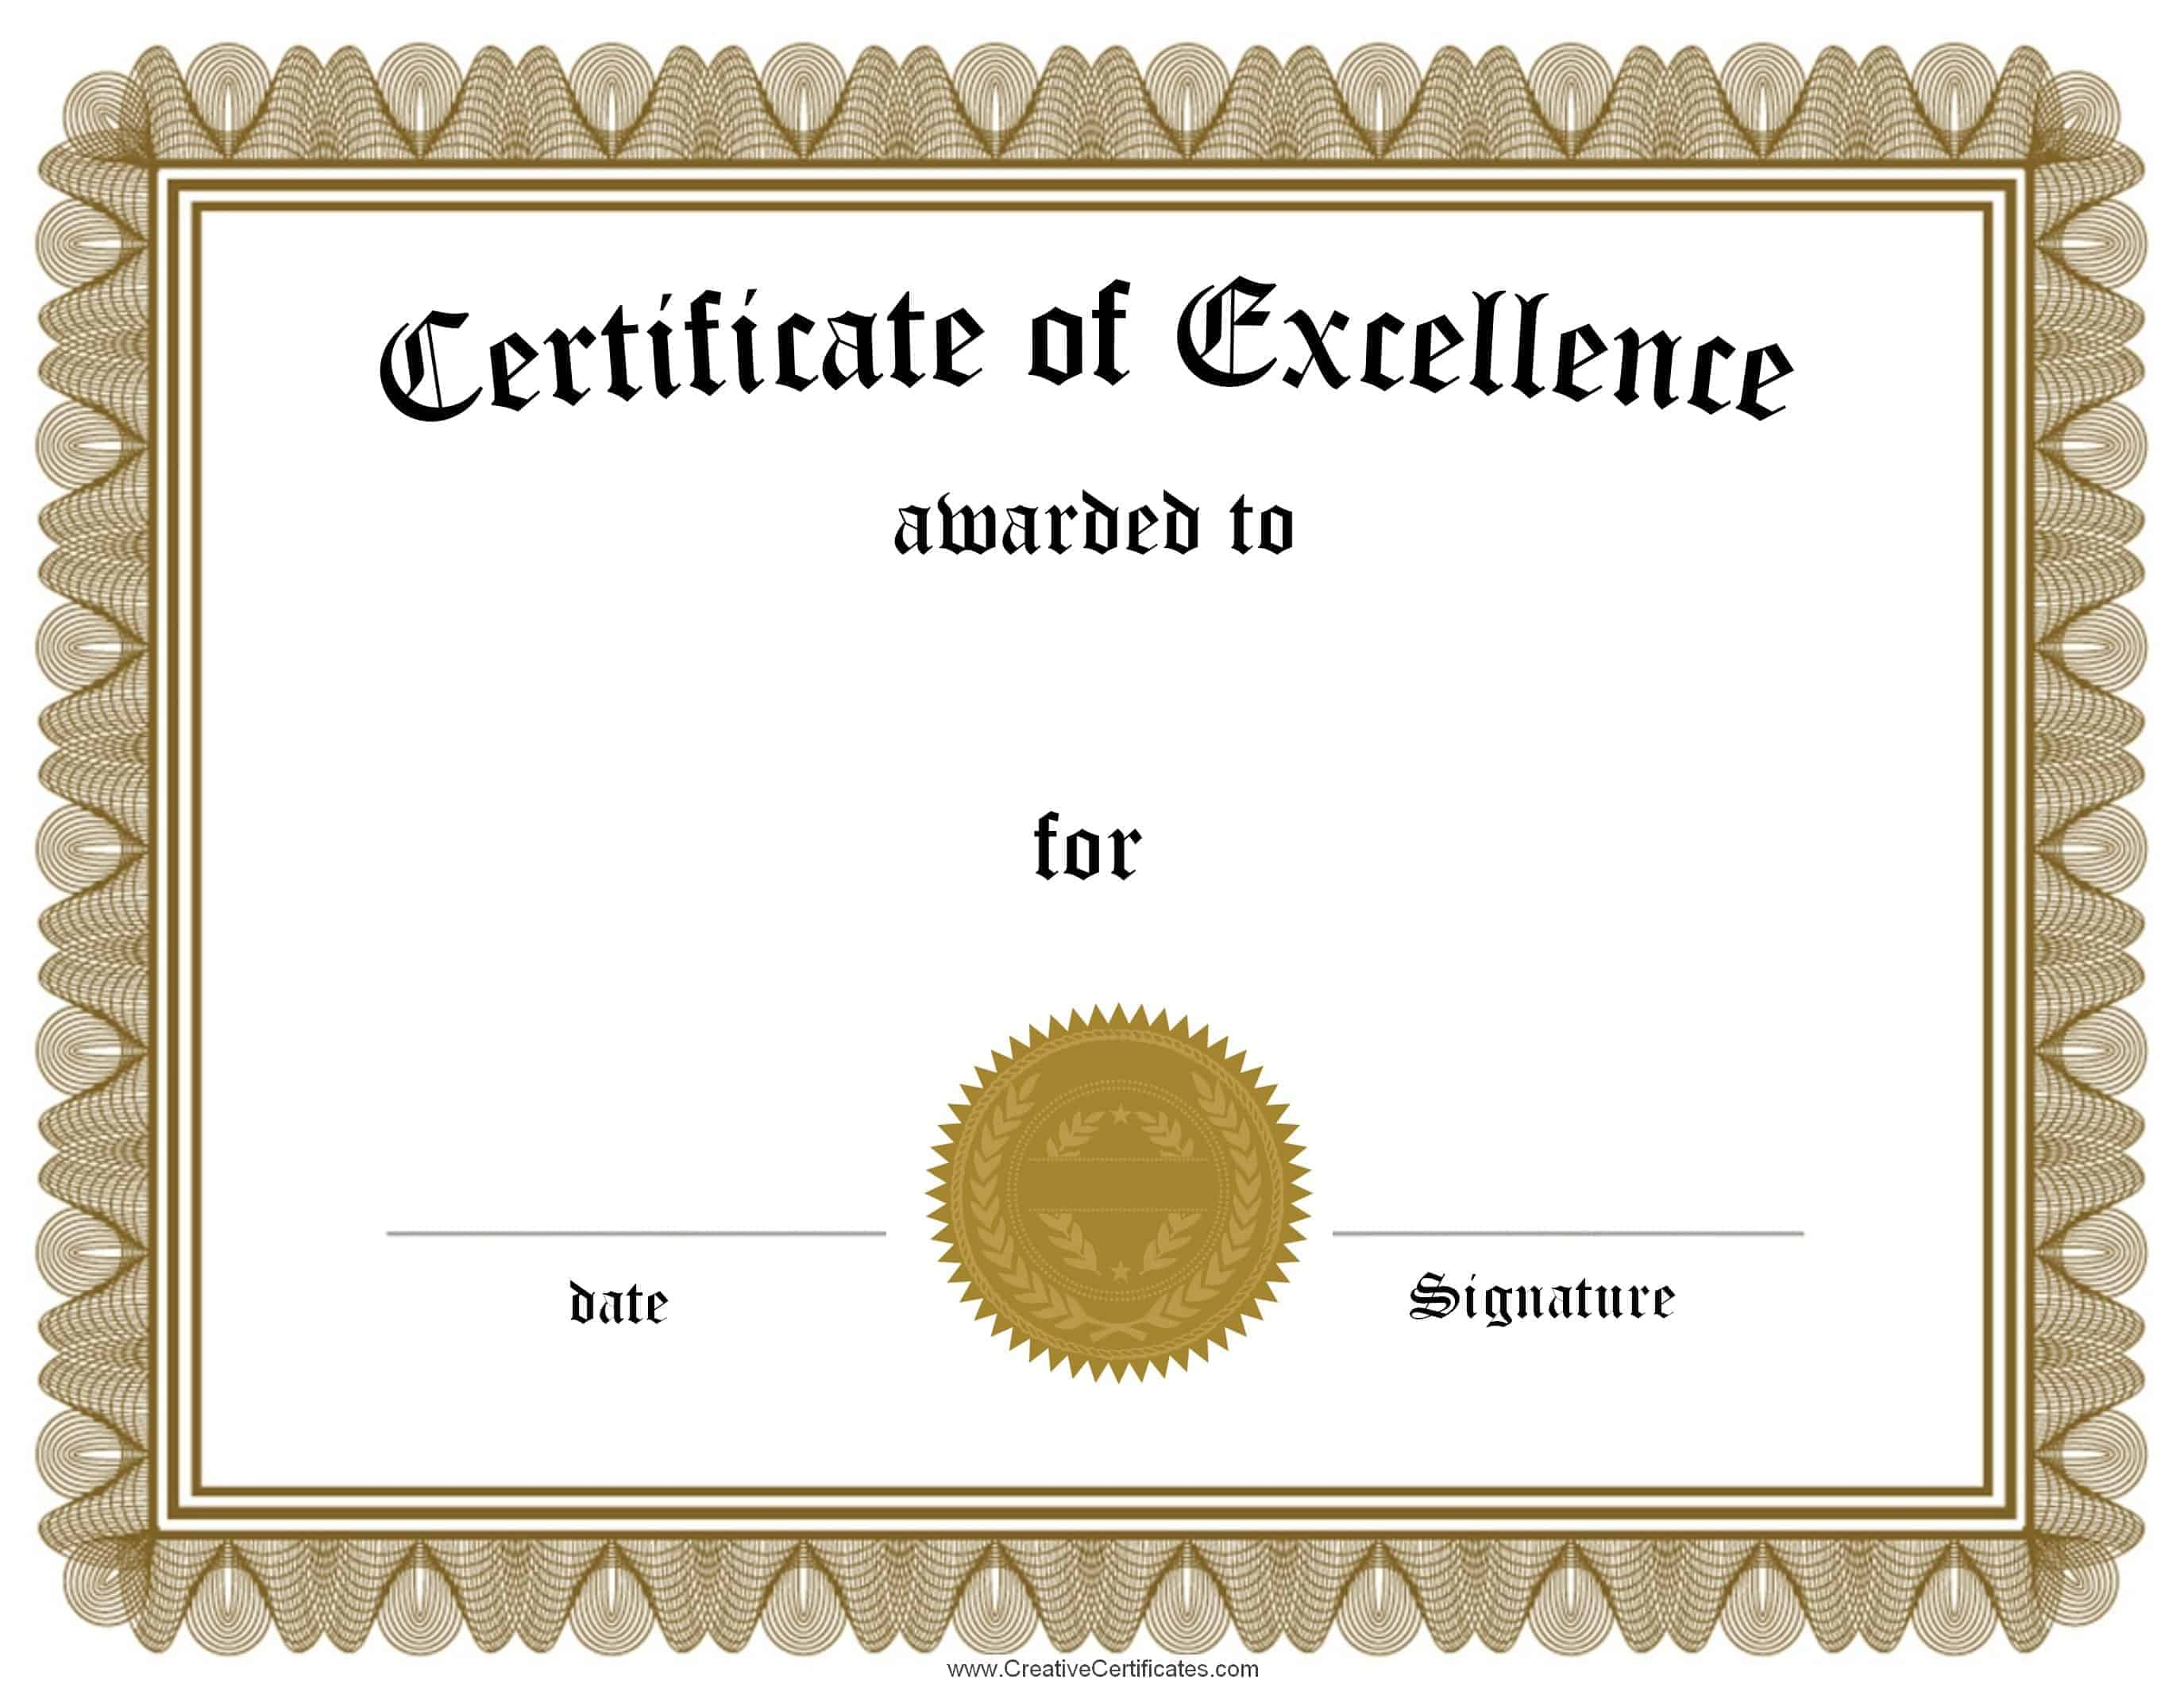 Award Plaque Template appreciation award plaque wording award – Thank You Certificate Wording